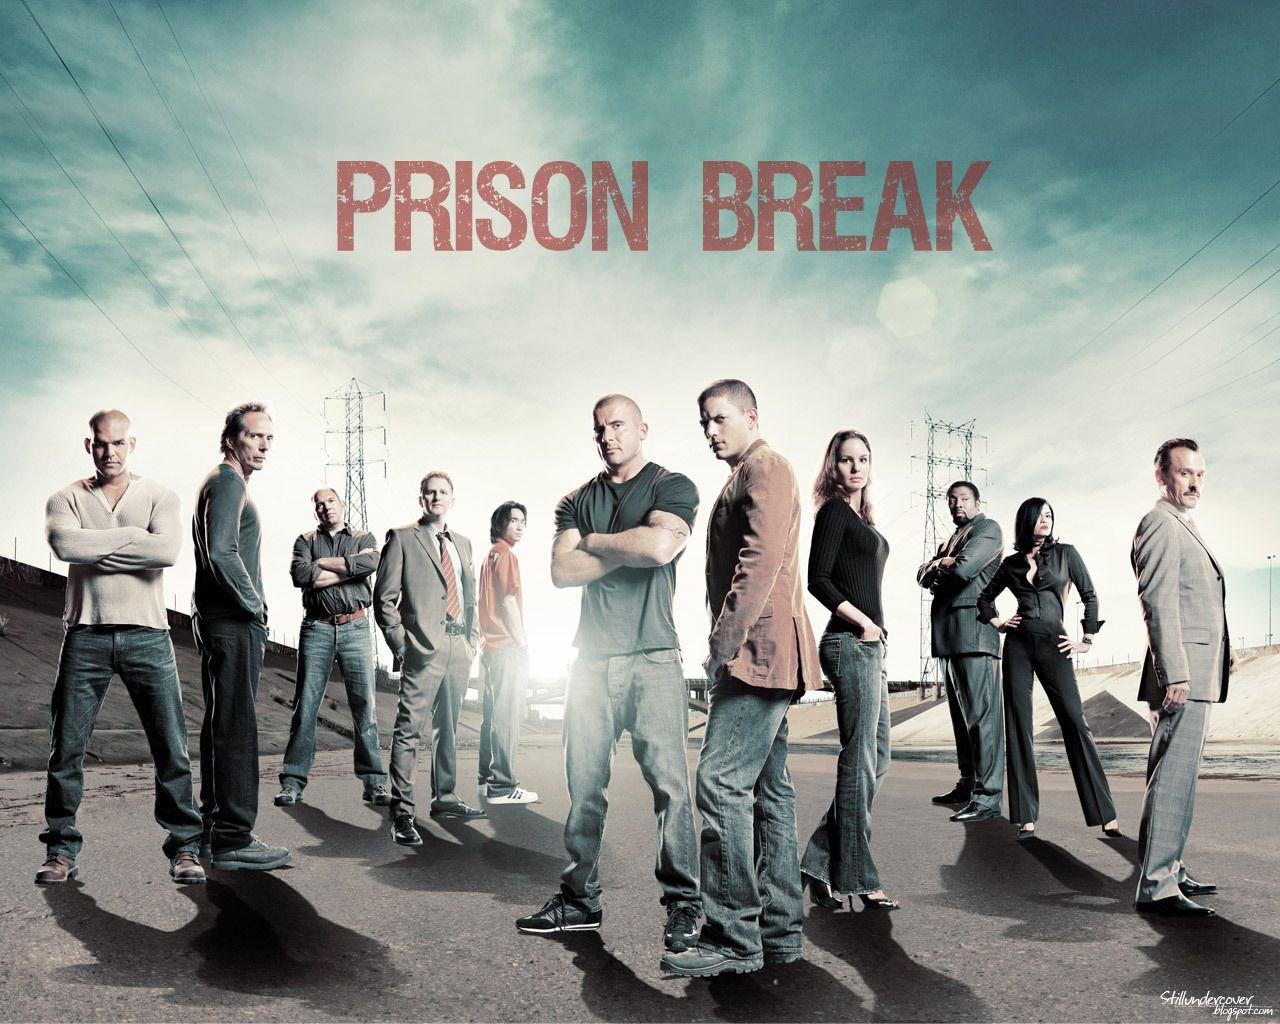 Prison Break Season 6